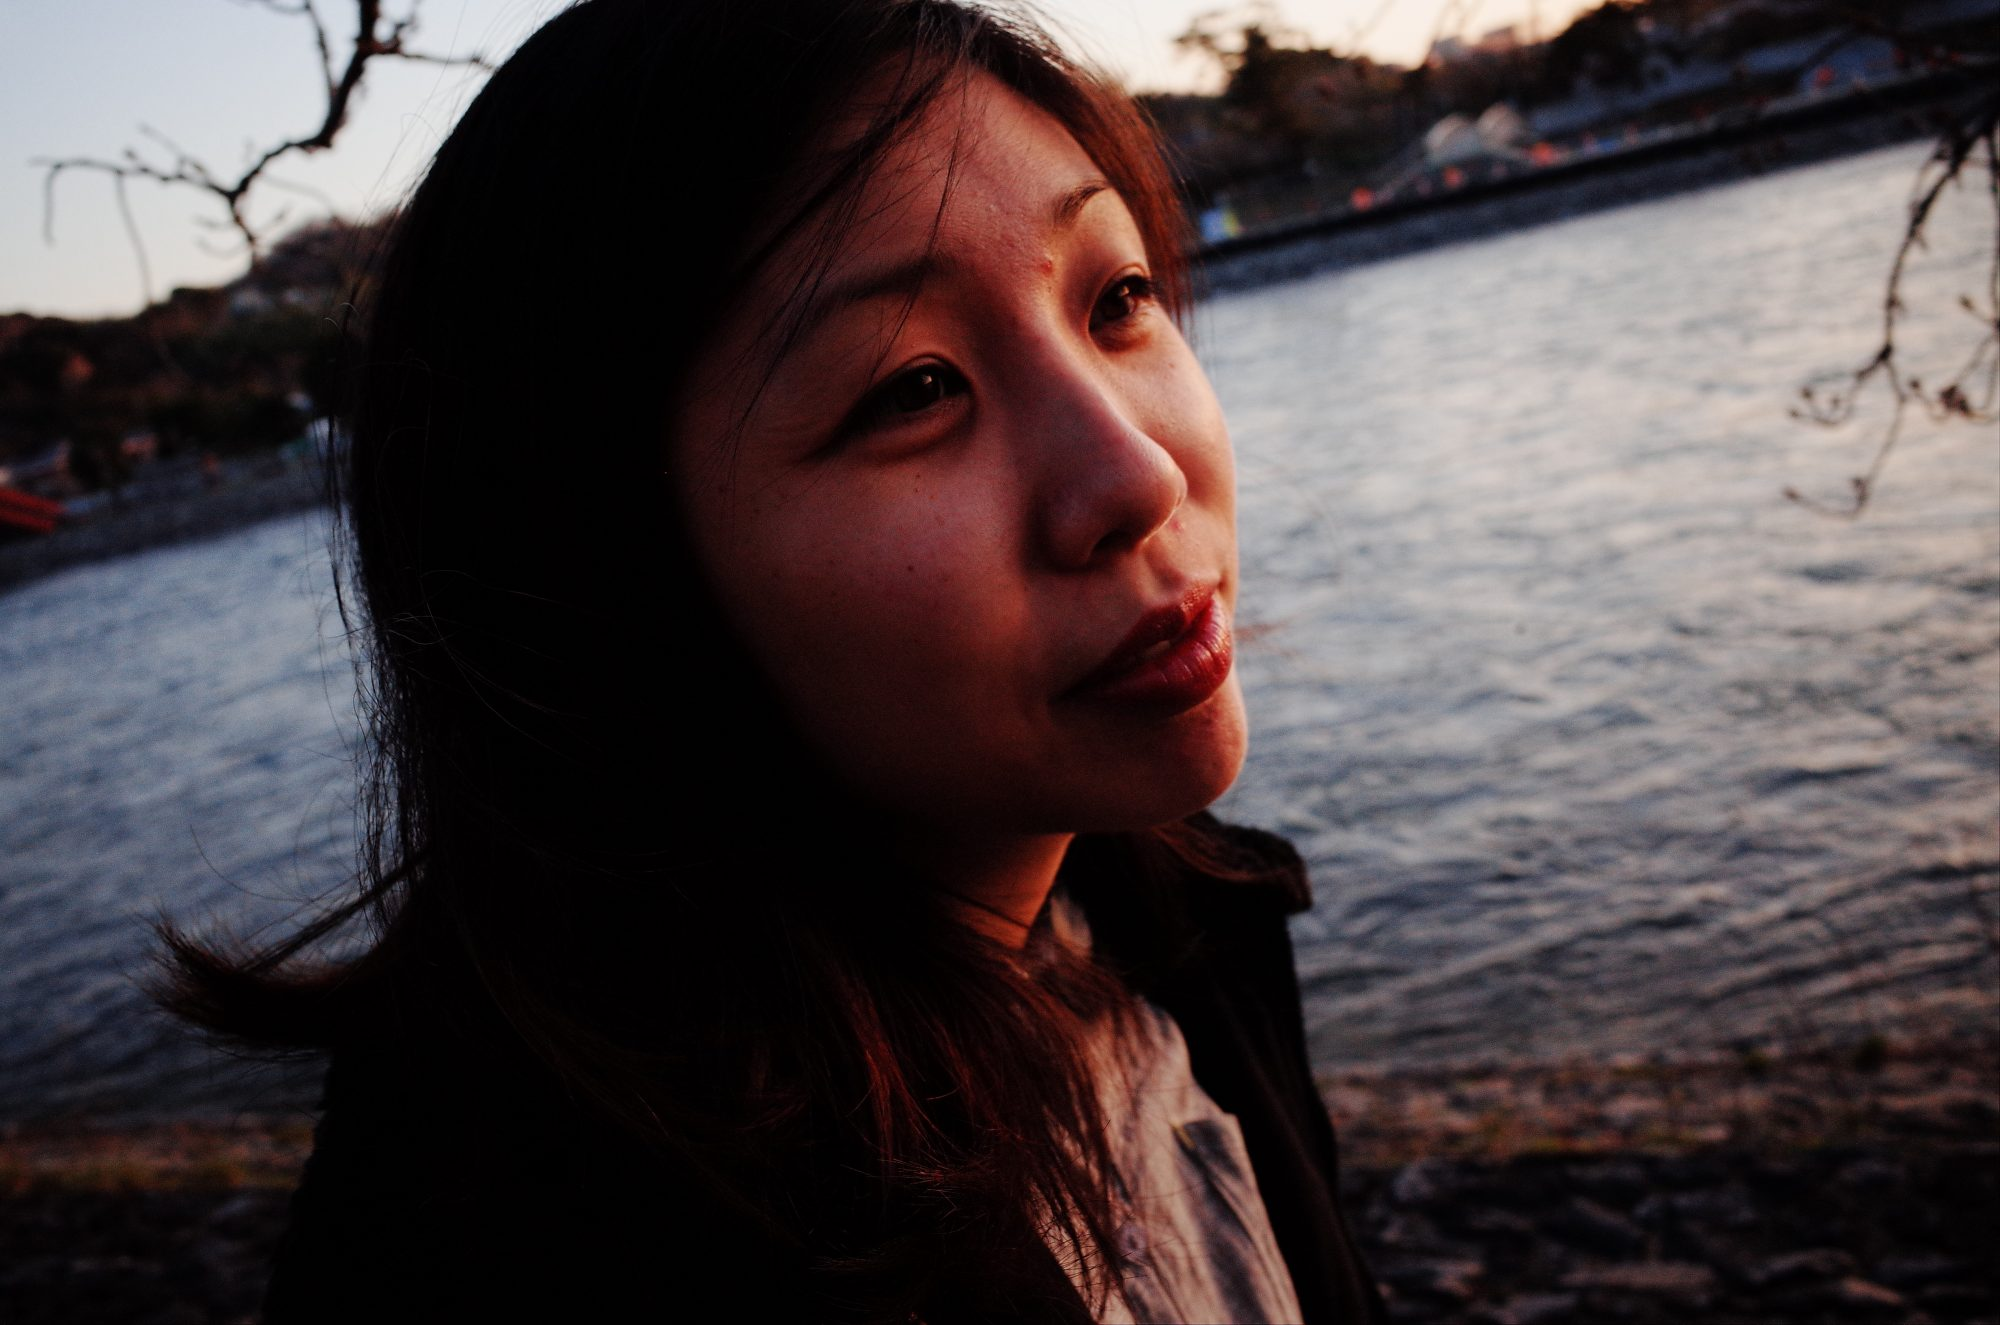 Cindy sunset, uji, Kyoto.